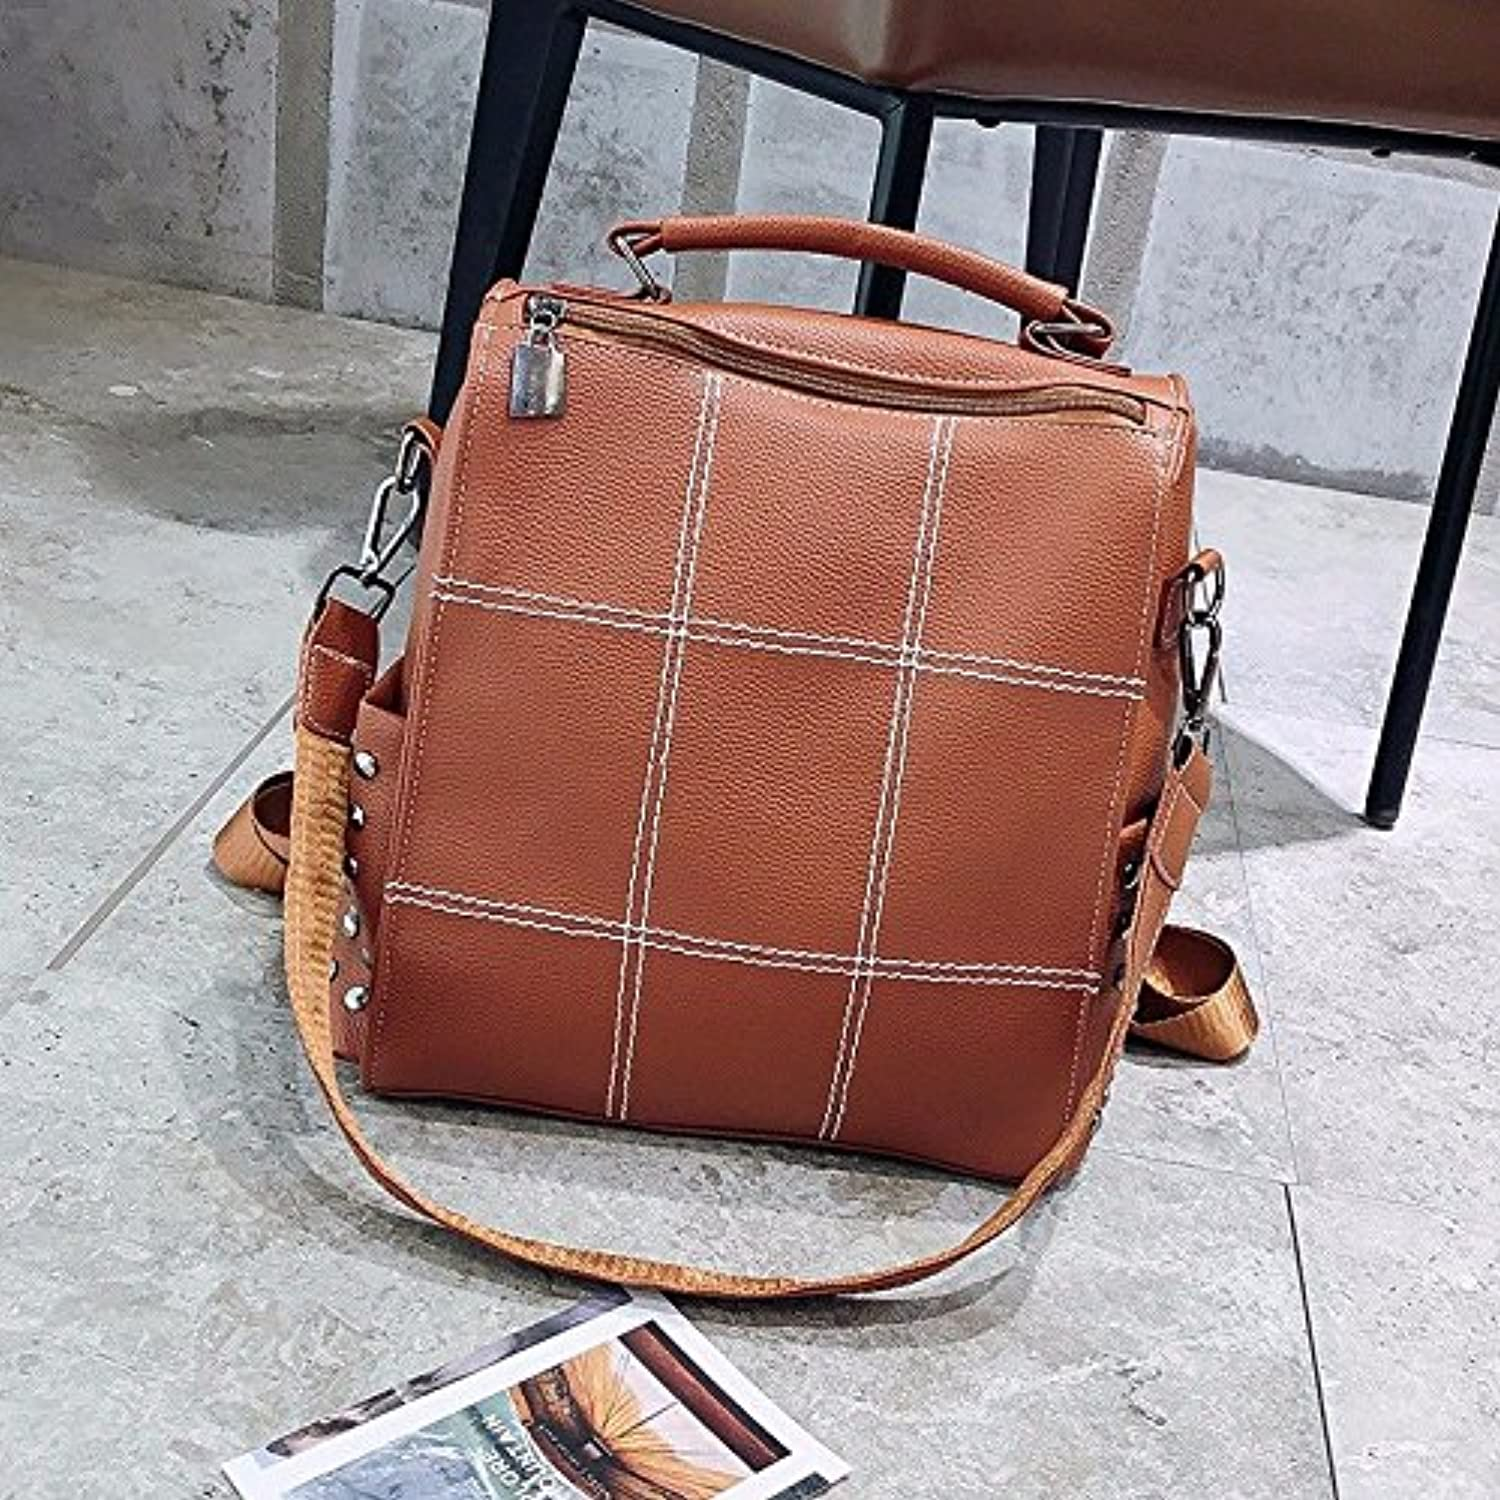 Womens Backpack Purse PU Leather Fashion Casual Shoulder Bag Daypack for Teenage Girls Brown